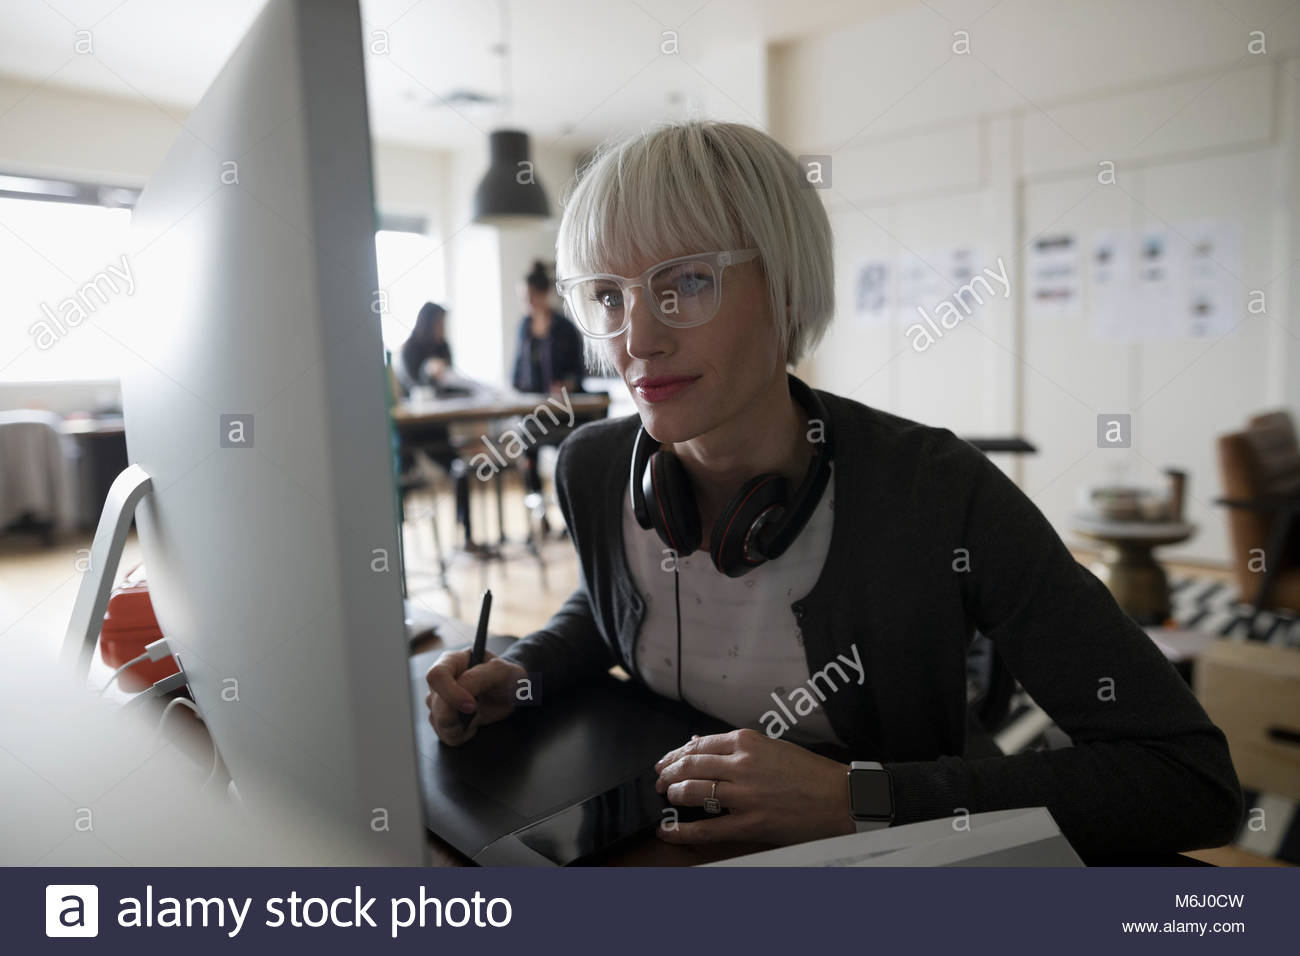 Focused female graphic designer using graphics tablet, leaning toward computer in office - Stock Image